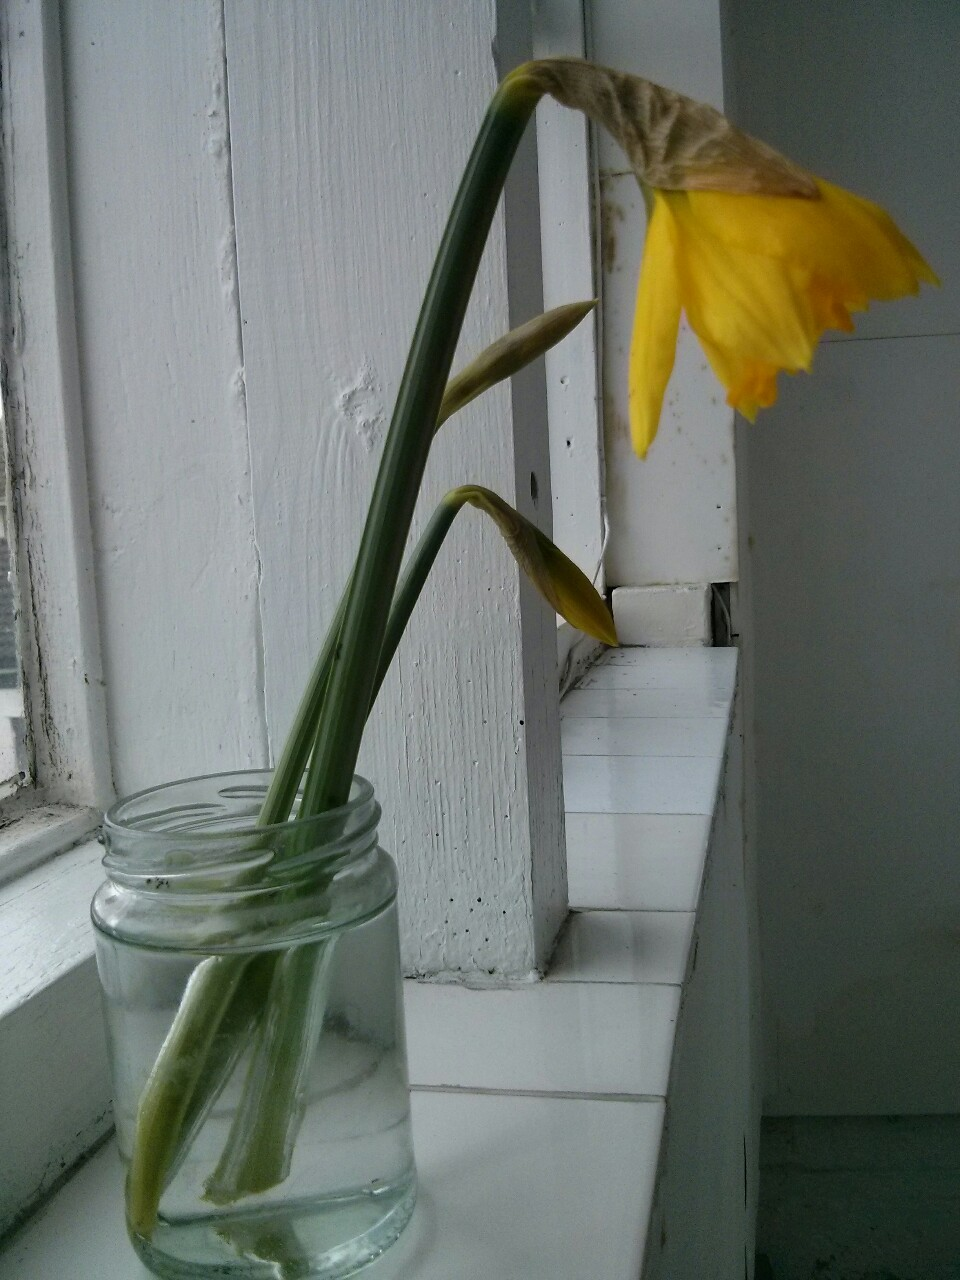 Picked from the allotment this lunchtime; the first daffodil. A bit early, but spring is on the way!